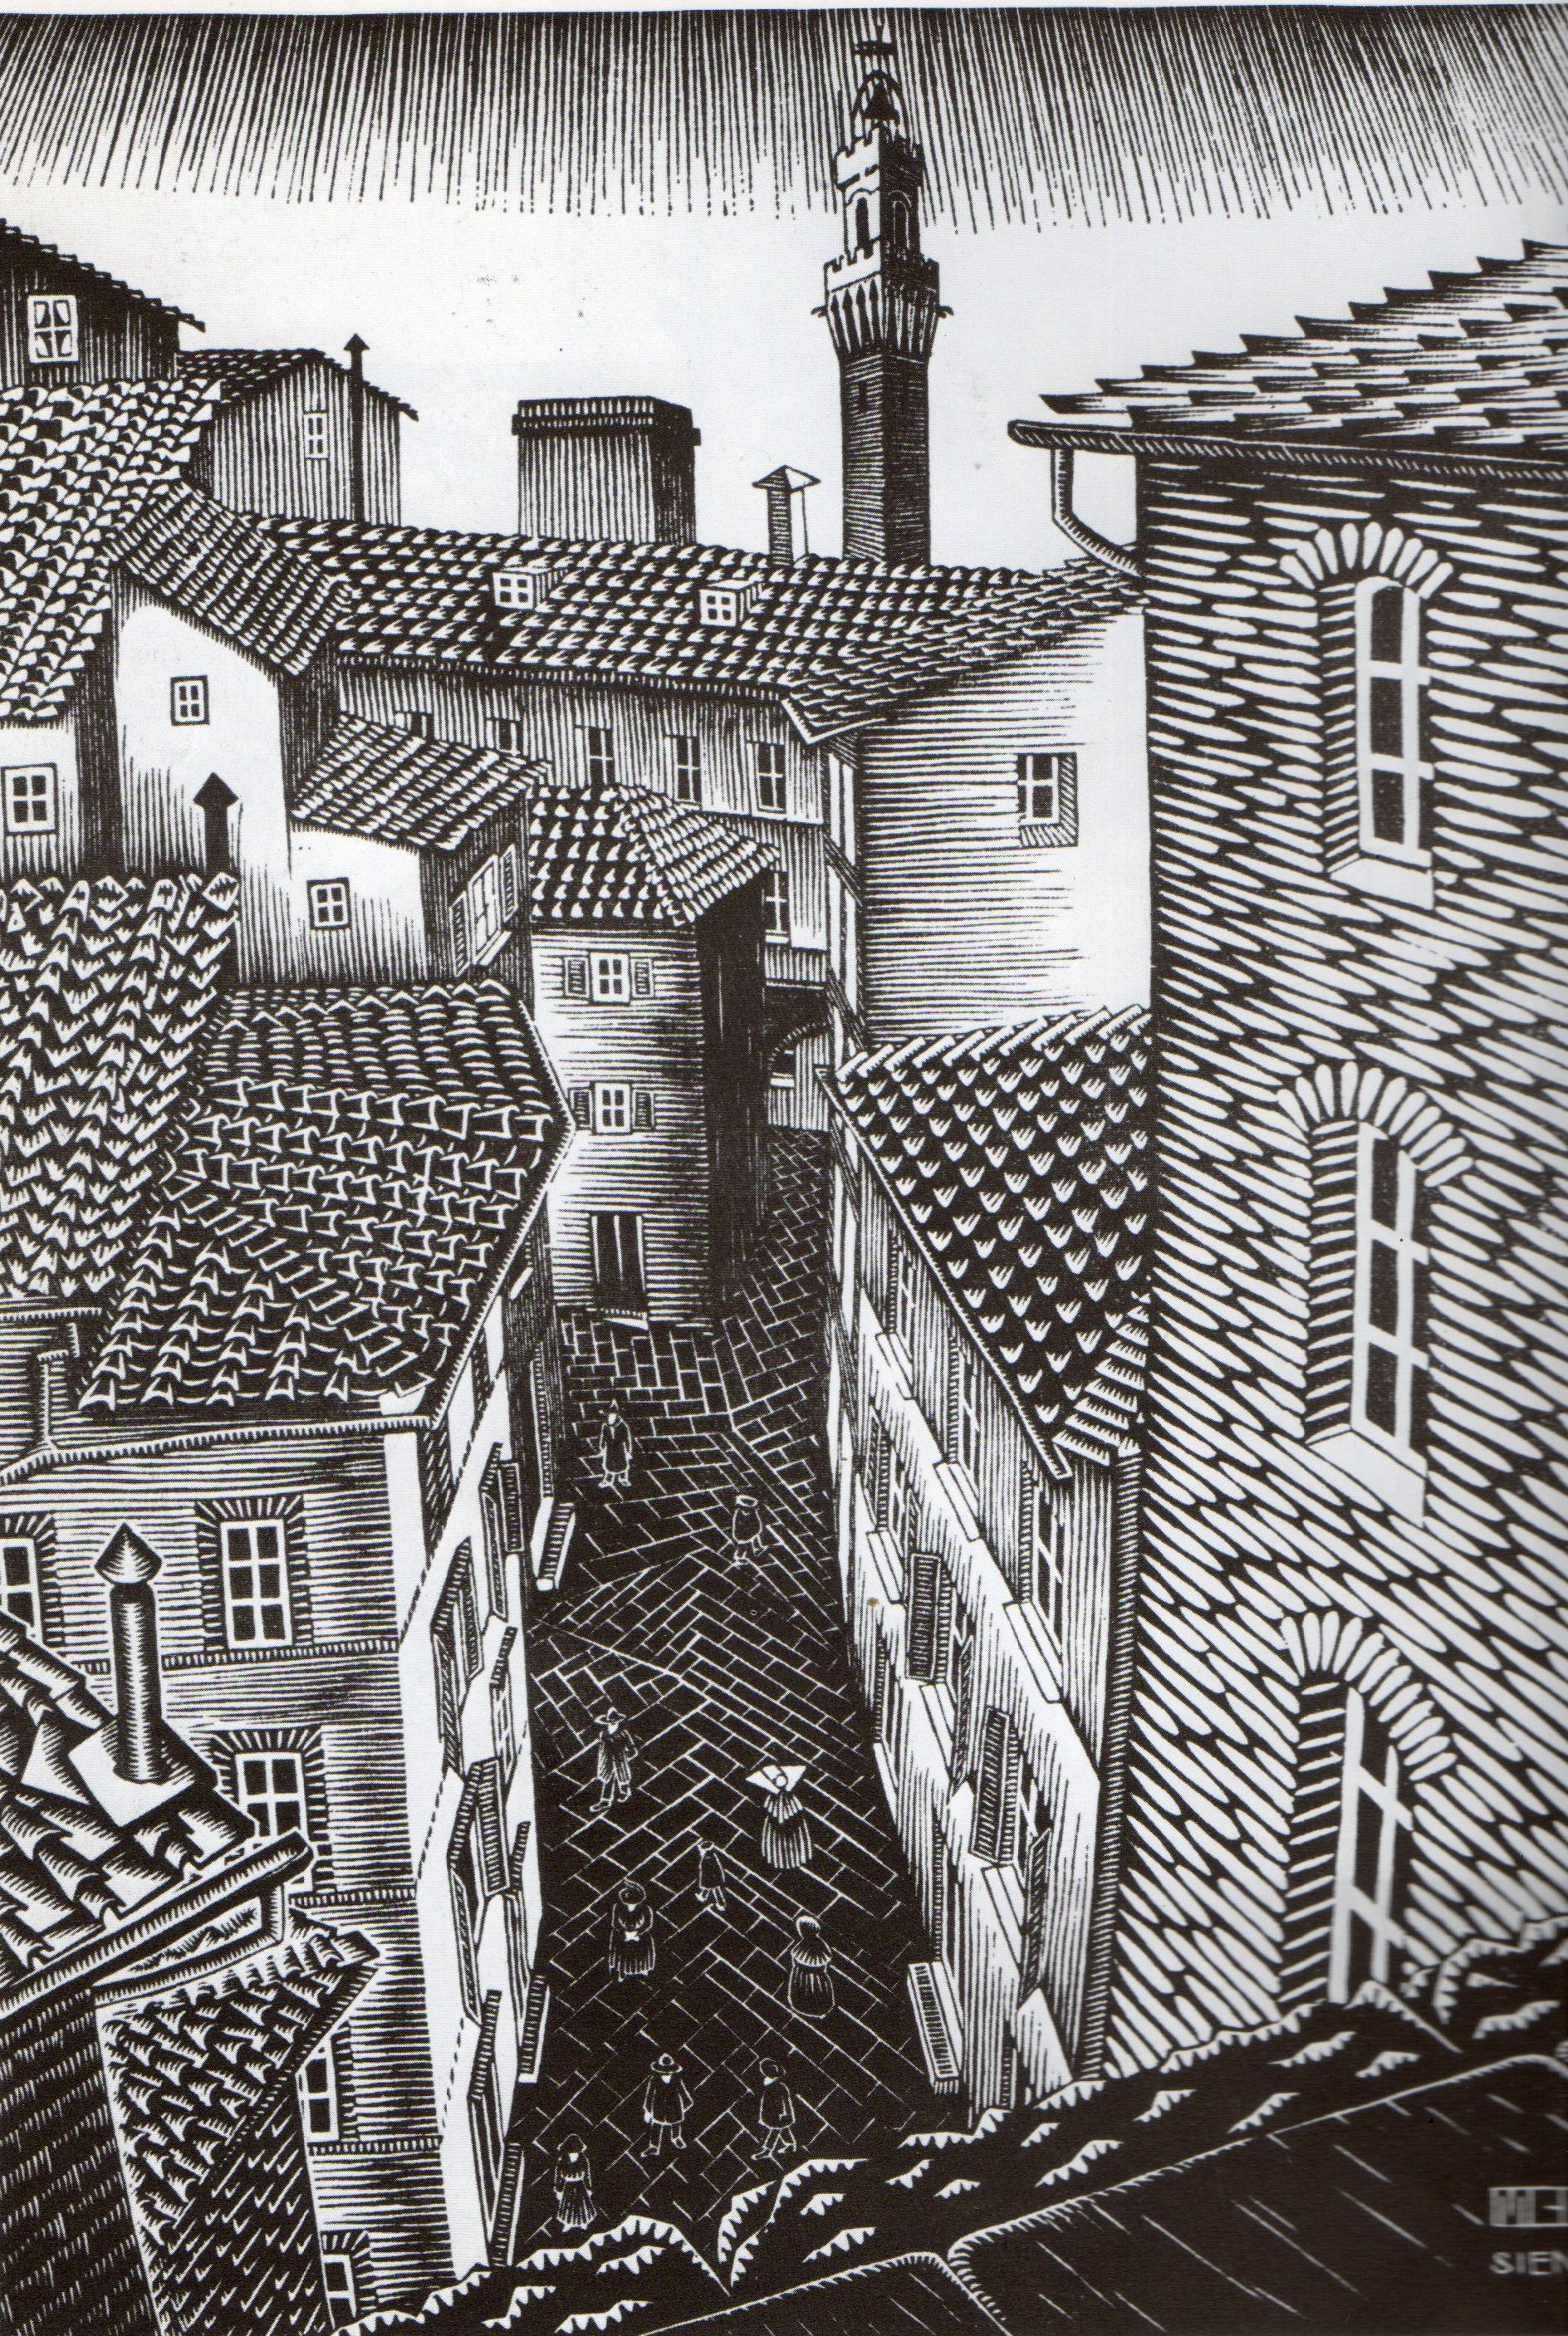 mc escher Ascending and descending is a lithograph print by the dutch artist m c escher first printed in march 1960 the original print measures 14 in × 11 1 ⁄ 4 in (356.